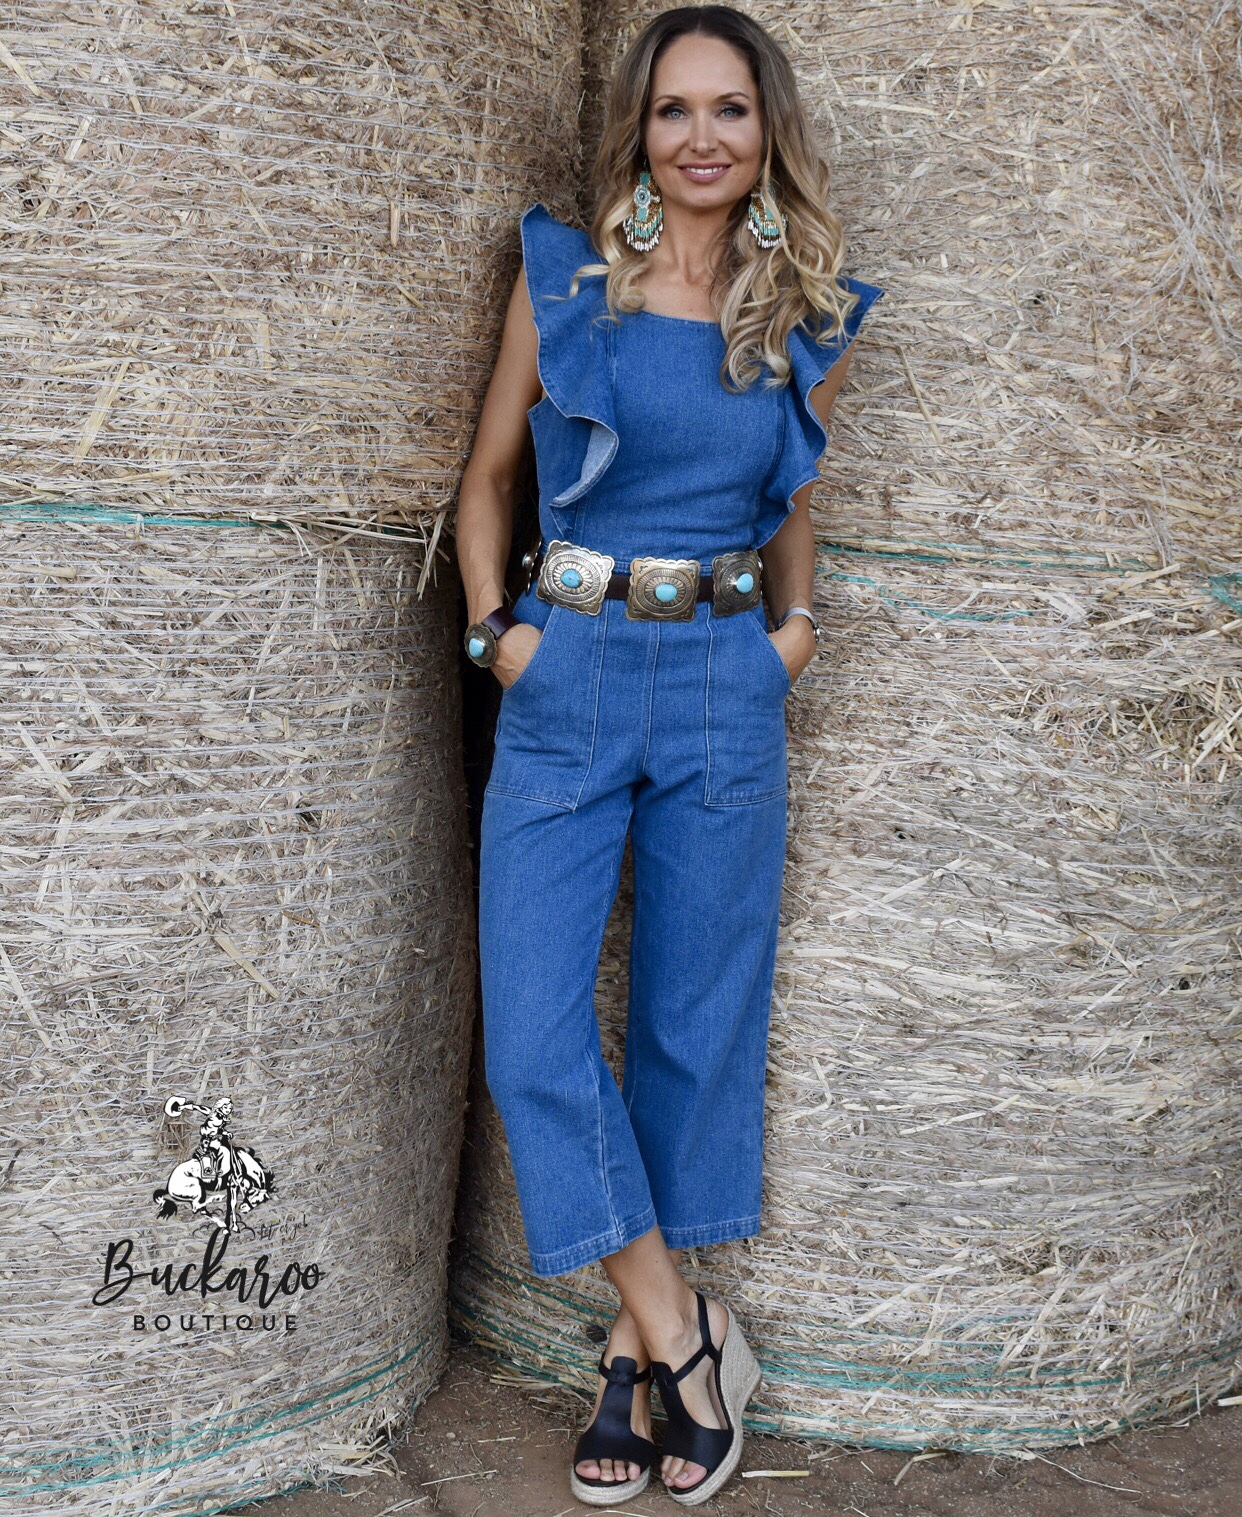 """""""This Aint My First Rodeo"""" Jumpsuit - Jasmine has a serene and classy style - available  here"""